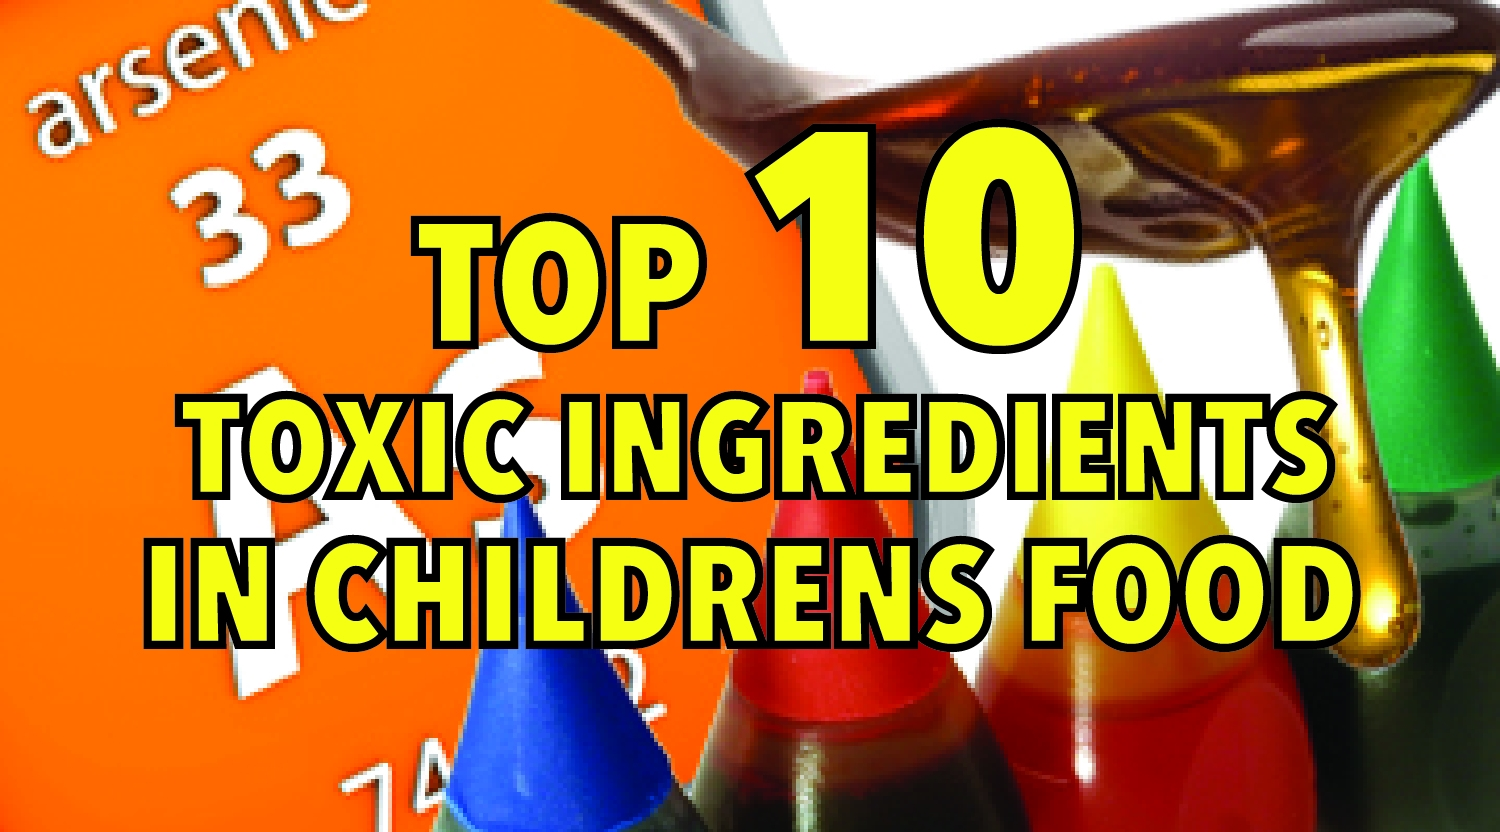 Top 10 toxic ingredients in children's food